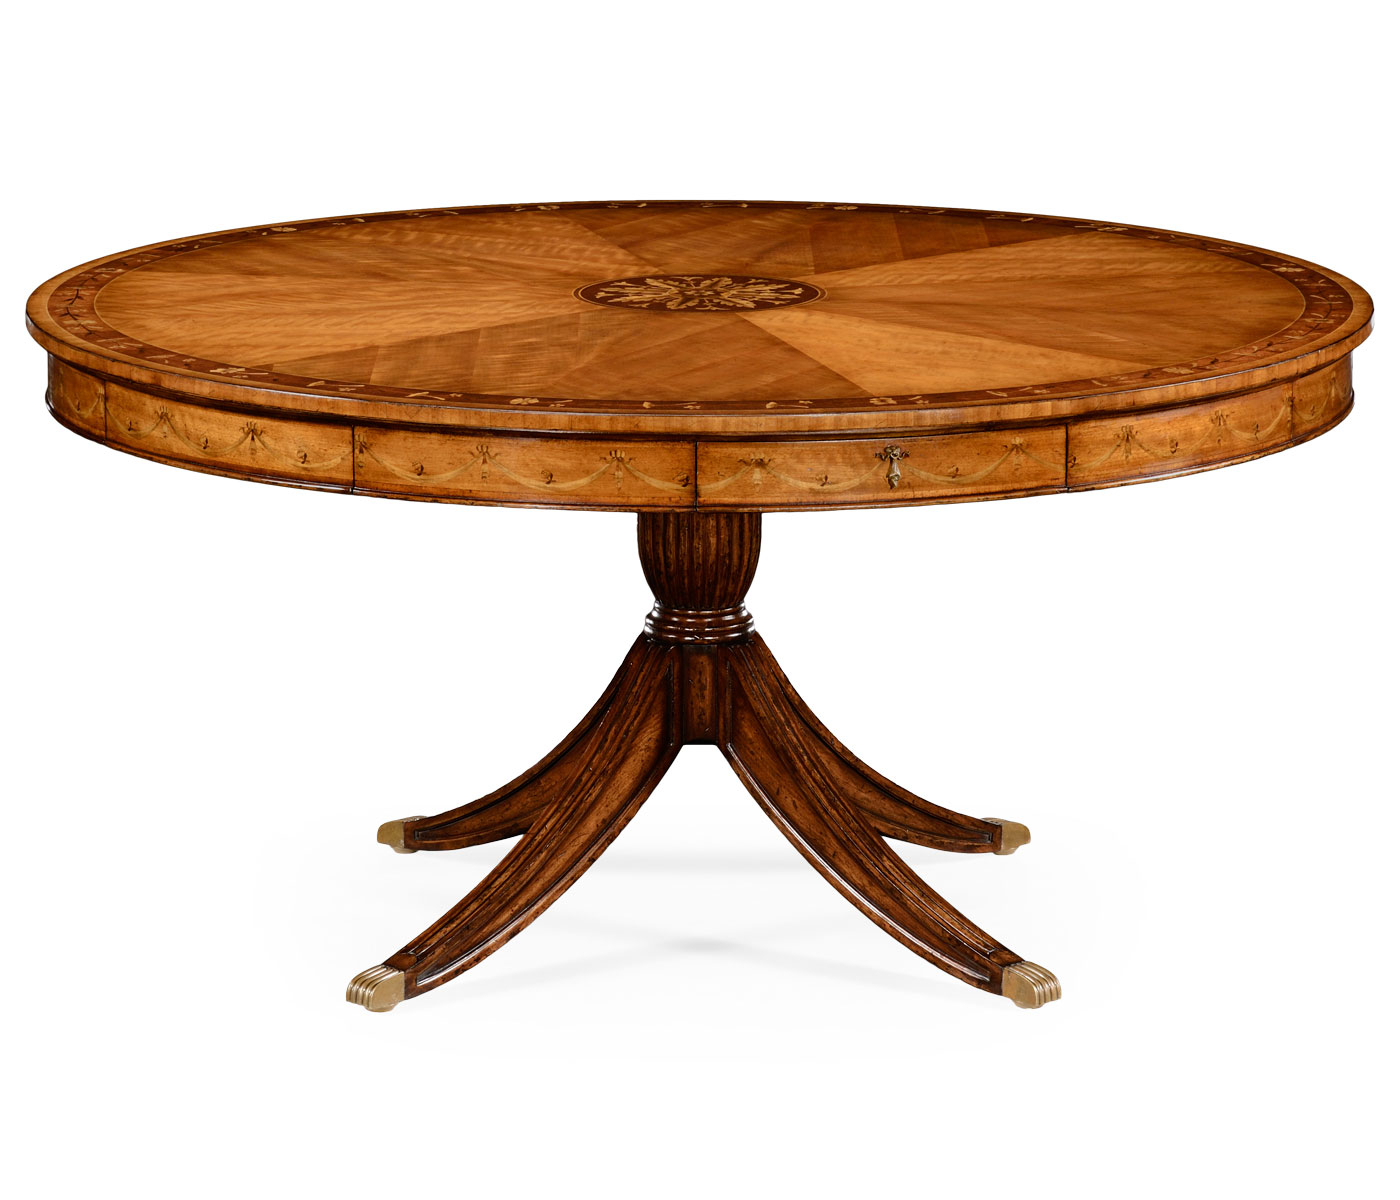 """62"""" Satinwood Pedestal Dining Table With Placemats Inside Latest Sevinc Pedestal Dining Tables (View 5 of 15)"""